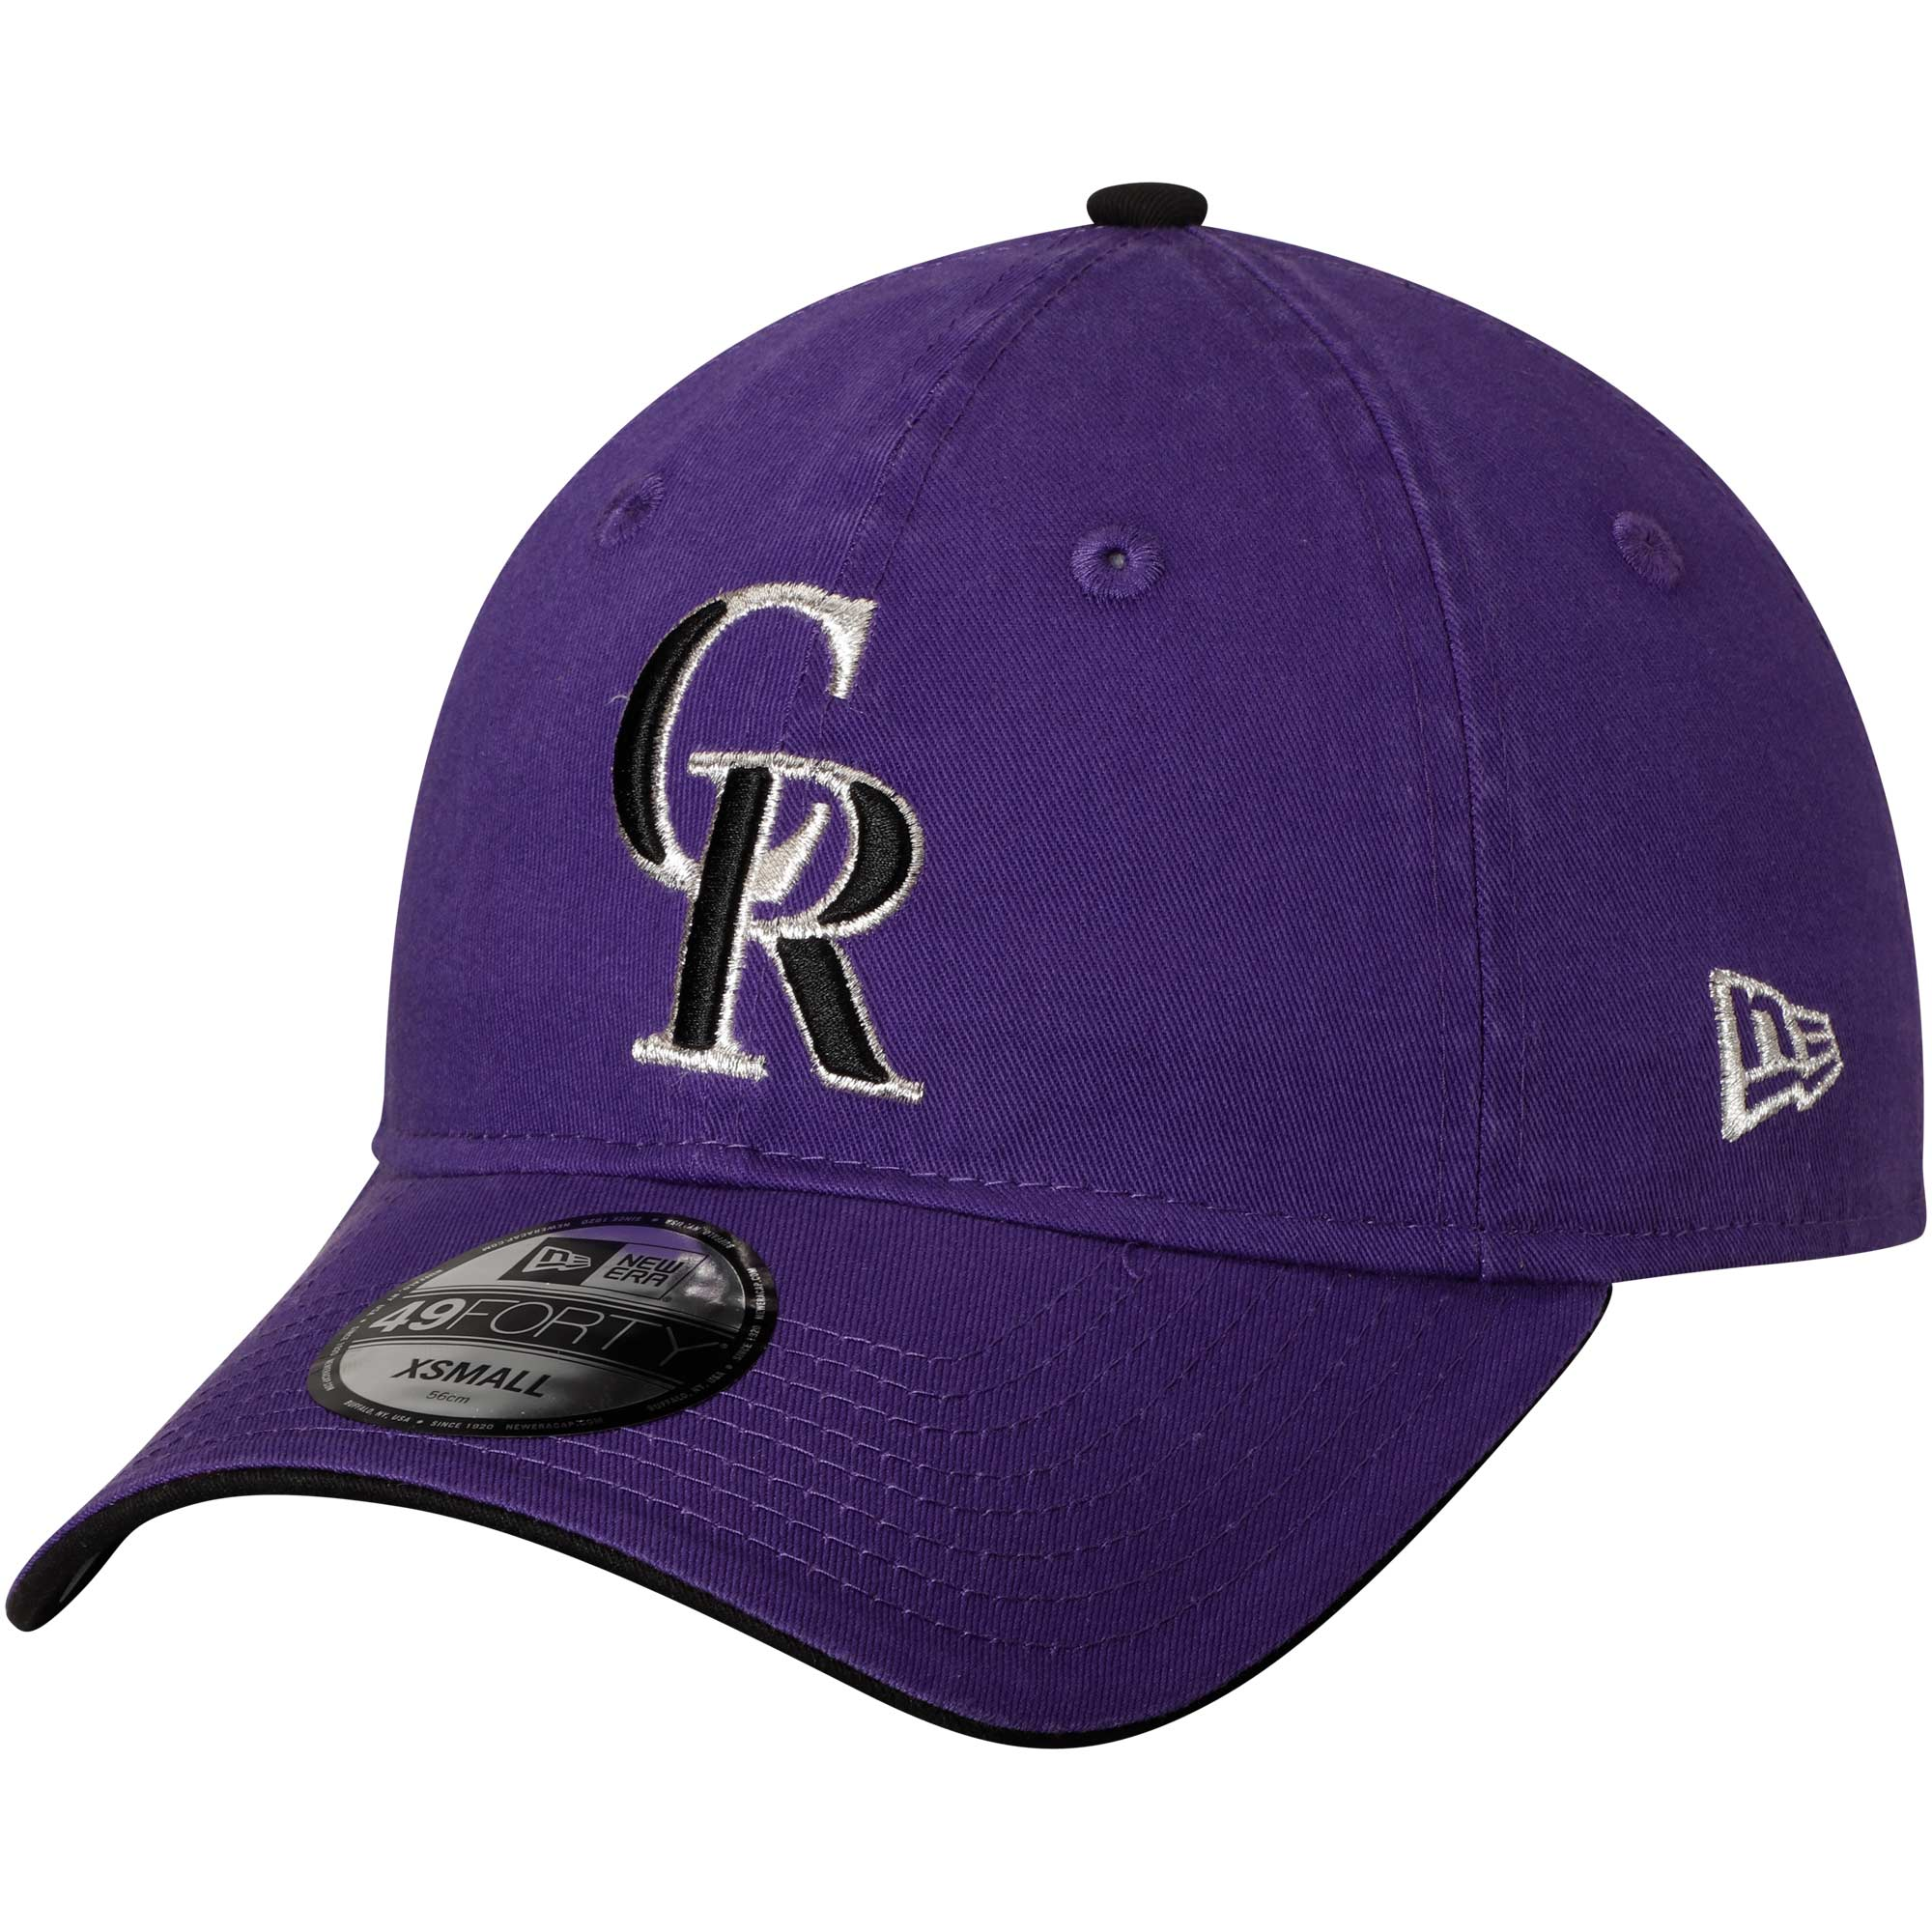 Colorado Rockies New Era Core Fit Replica 49FORTY Fitted Hat - Purple